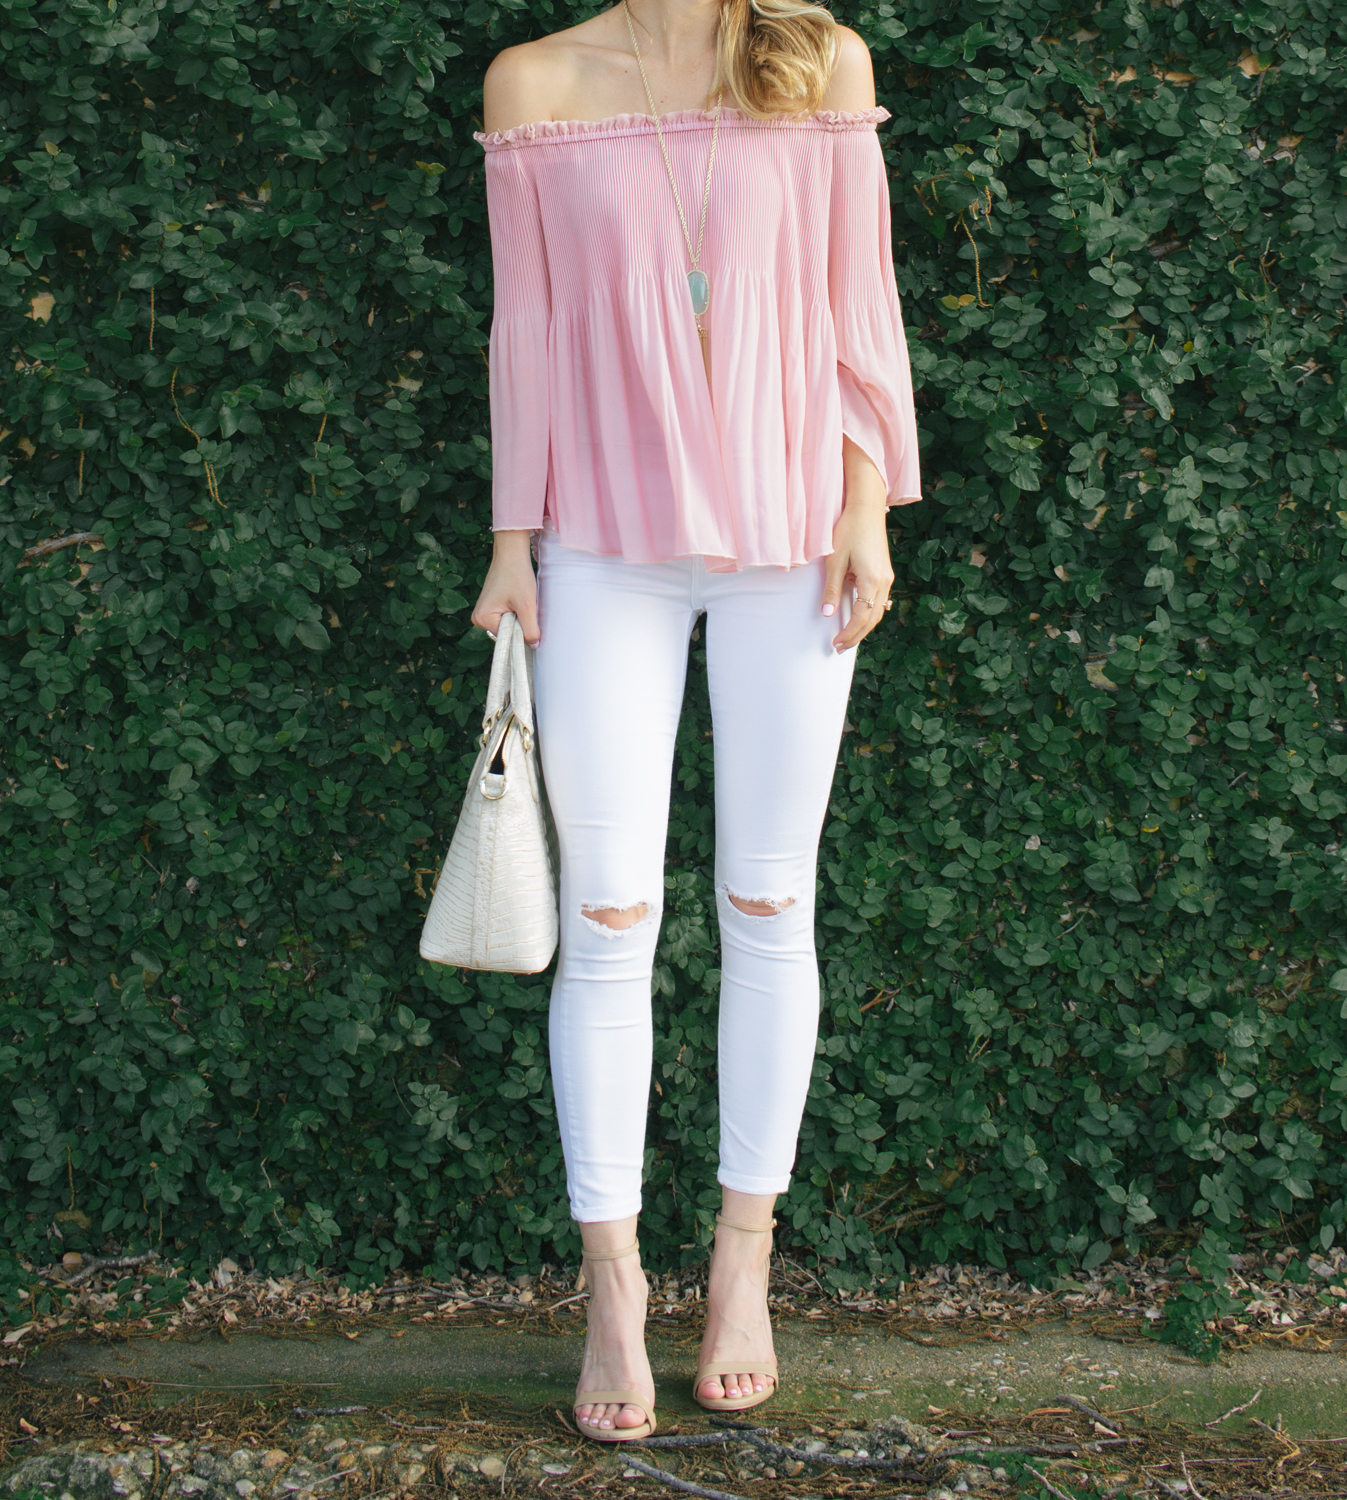 livvyland-blog-olivia-watson-austin-texas-fashion-blogger-blush-pink-off-shoulder-top-topshop-white-skinny-jeans-date-night-outfit-summer-3